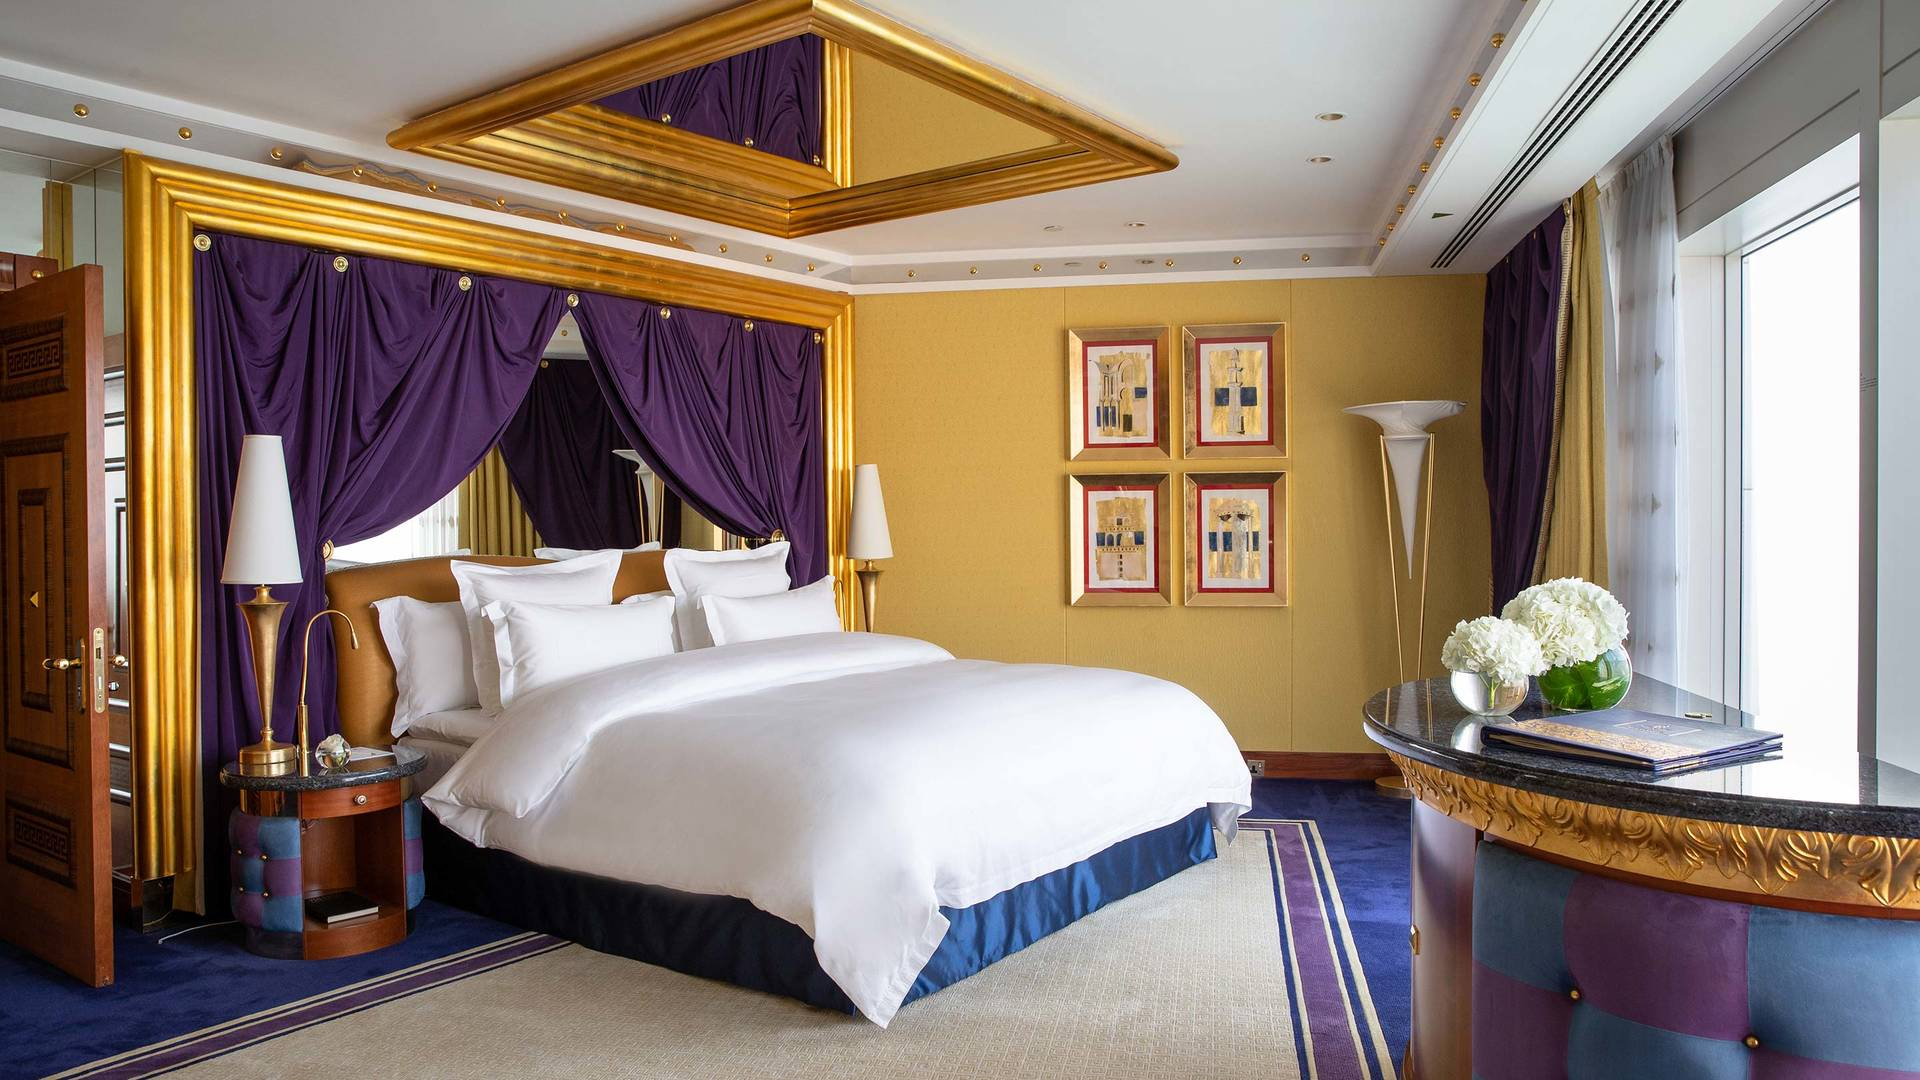 Jumeirah Burj Al Arab Bedroom Suite with bed and mirror